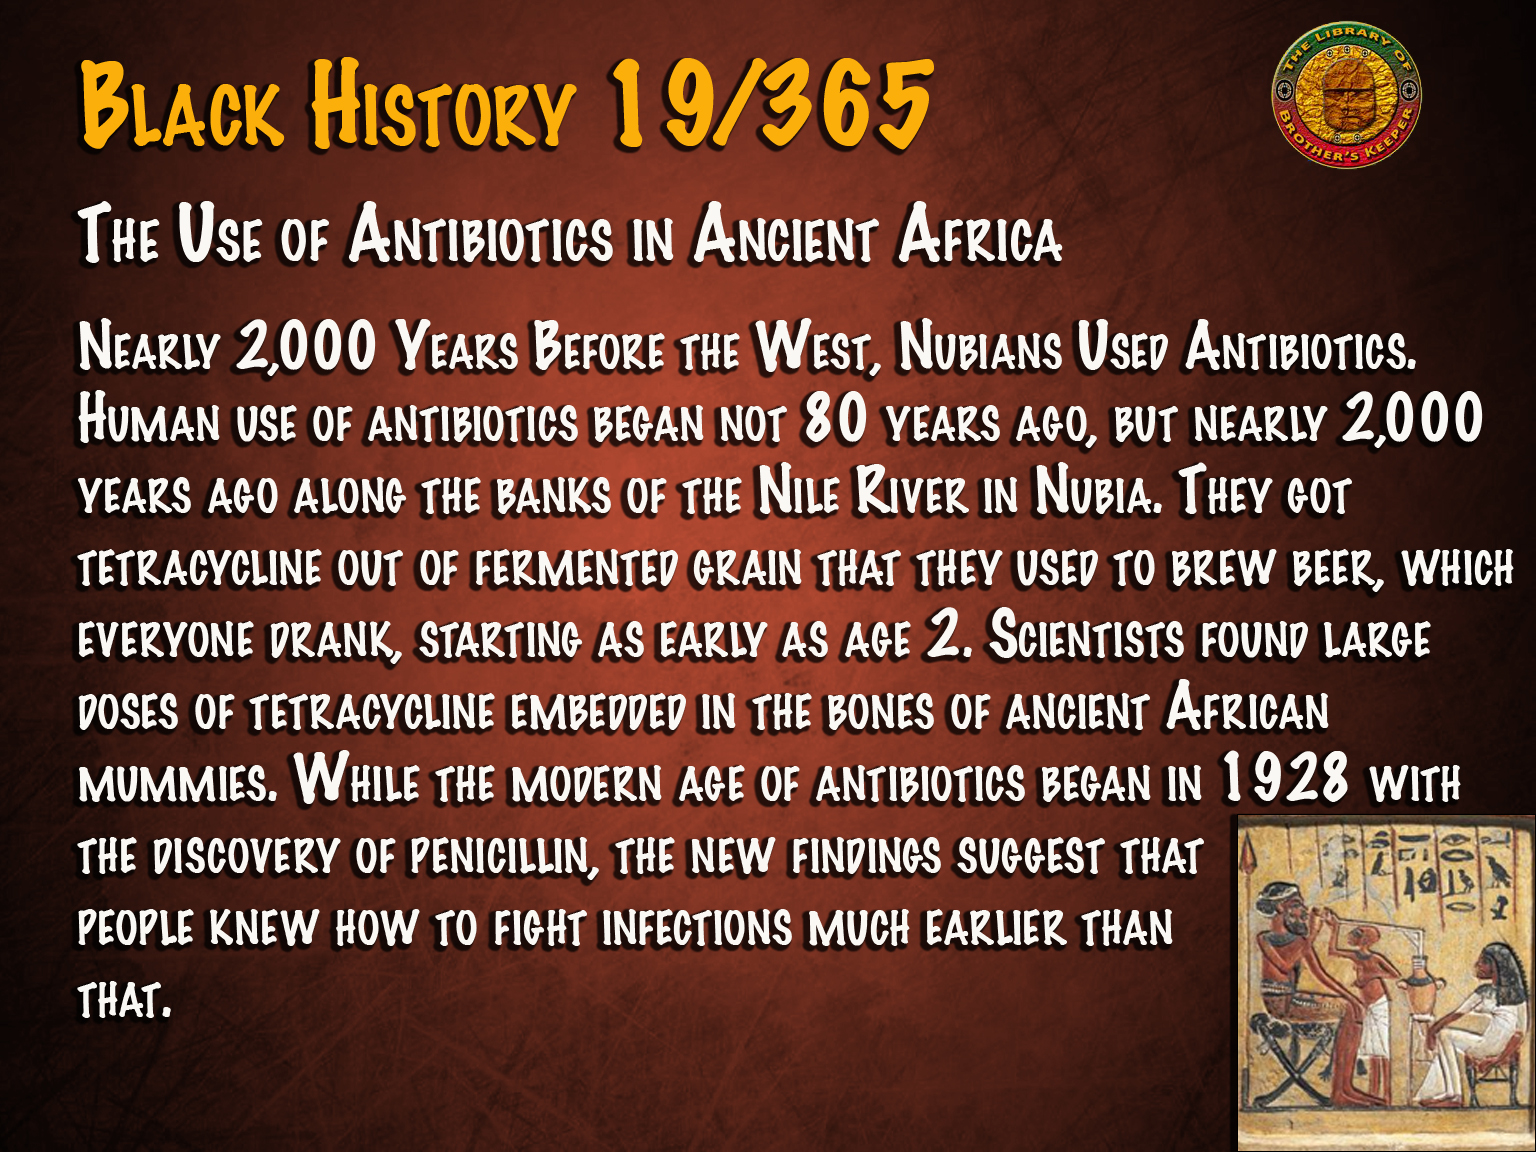 Antibiotics in Ancient Africa